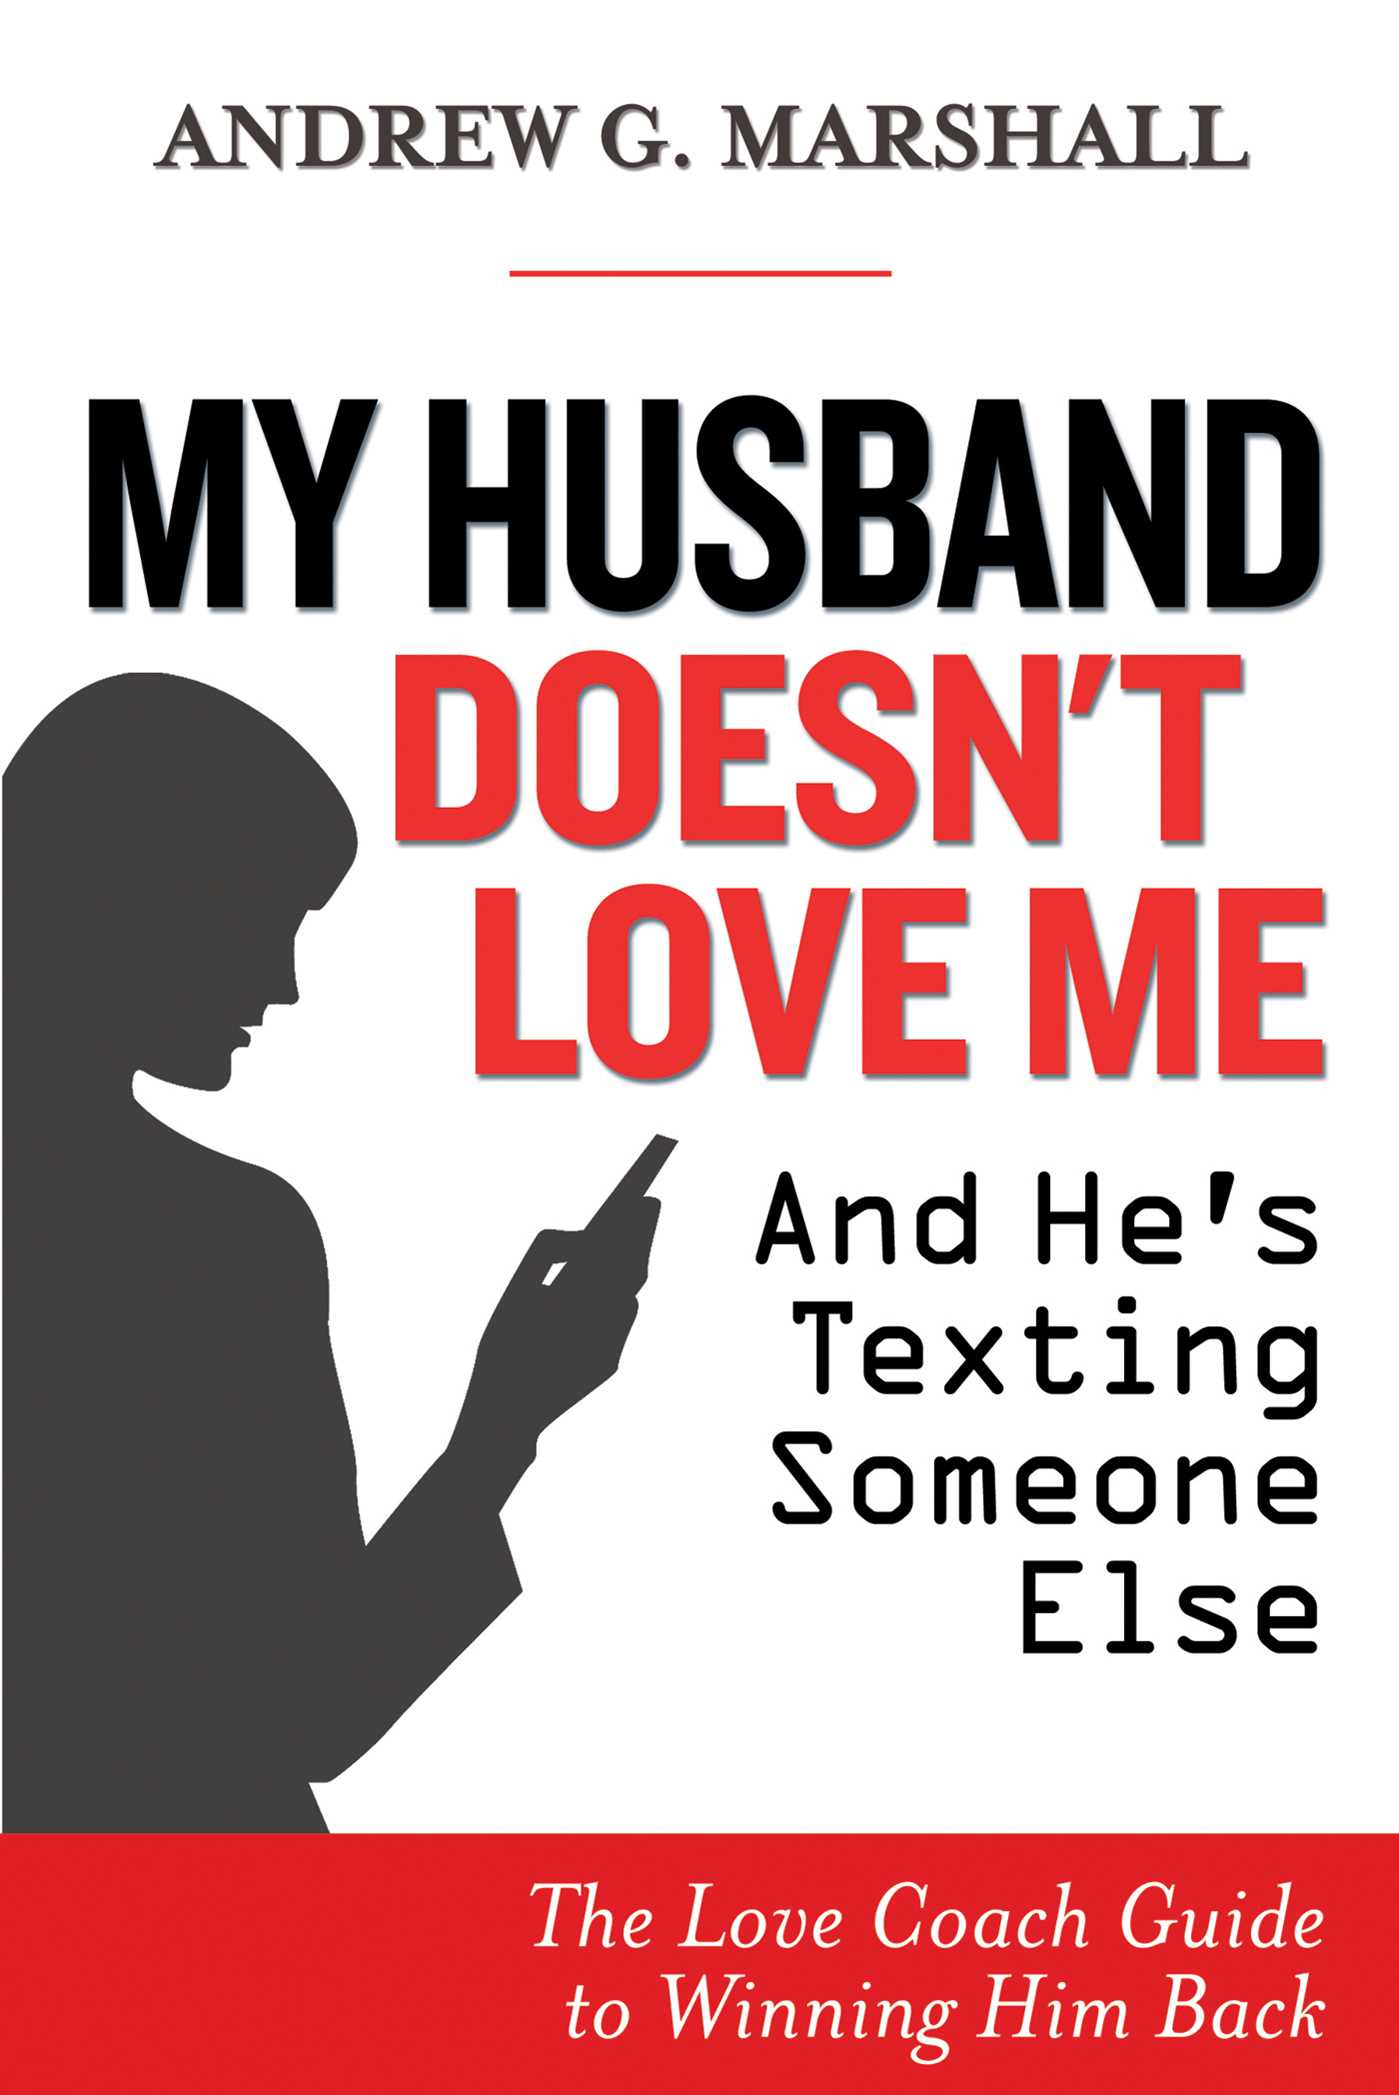 My husband never says he loves me